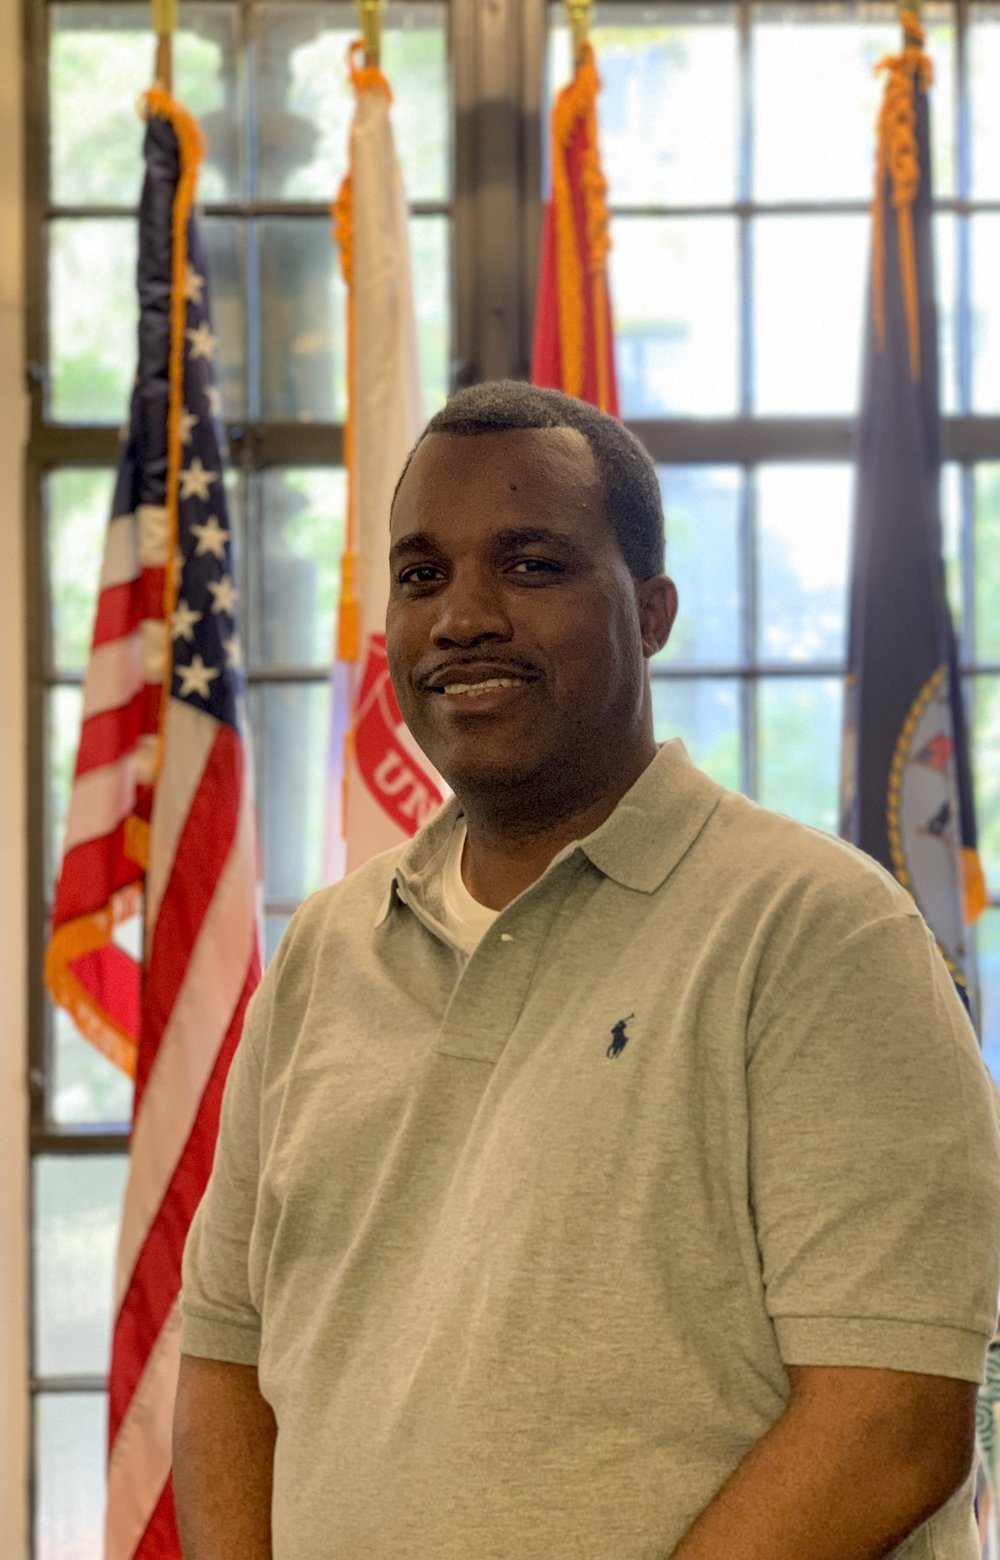 "Purvis Gills Public Affairs Officer    United States Navy 1991 - 1999    Hometown: Houston, TX    Major: Political Science   ""I joined the United States Navy after high school and served as a Disbursing Clerk. My time in the service has afforded me many opportunities and has helped me become the person I am today. The skills and lessons learned in the Navy have helped me to be successful in life outside of the military. My deployments to other countries not only gave me the opportunity to see the world but also to understand different viewpoints and cultures.  Today, I stand before you a proud veteran, husband, father, and a Cal Berkeley student. During my time in service, I learned the importance of teamwork and that I always have more to give. The military showed me that my commitment to service didn't stop after being discharged from the military. The Cal veterans group allows me to continue to serve. I look forward to building on the hard work and sacrifices of the Cal veterans that came before me by fostering positive community relationships"""